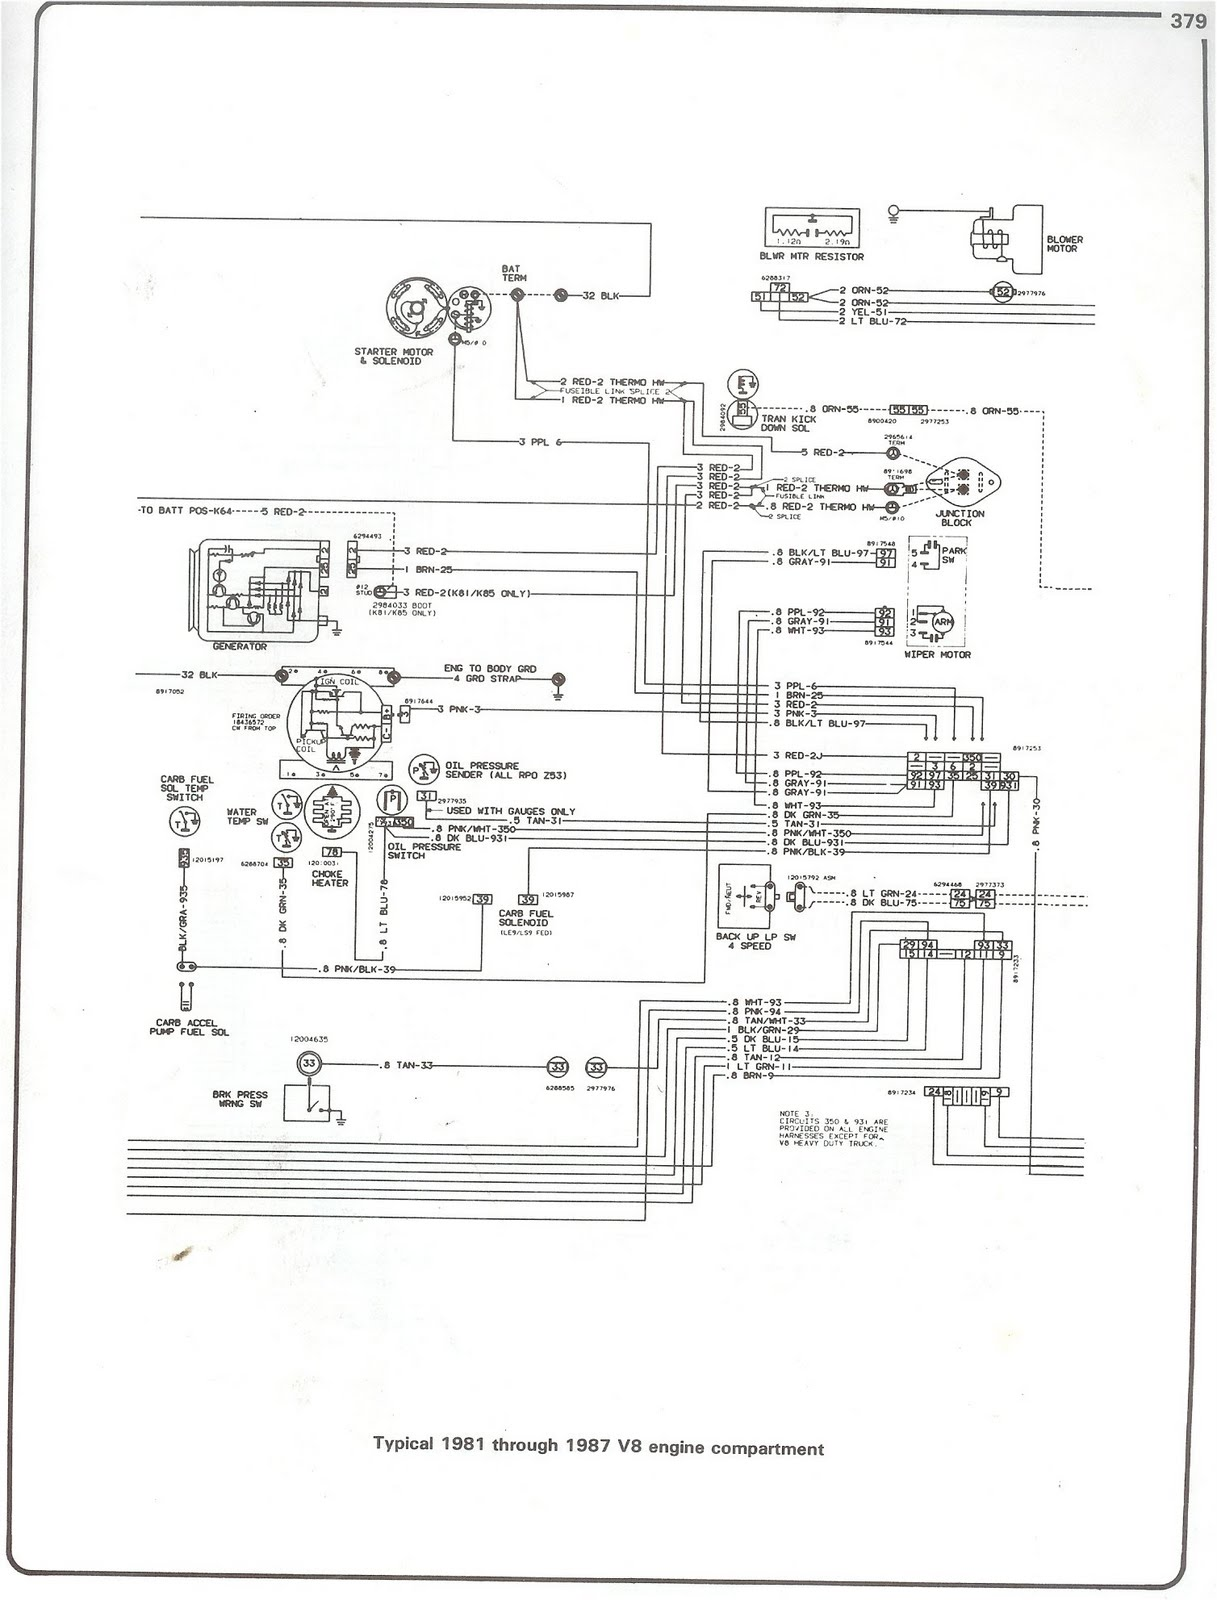 81 87_chevy_truck_V8_engine bulk head pinout diagram 87 r10 and 88 suburbans the 1947 Chevy Engine Wiring Harness at mifinder.co